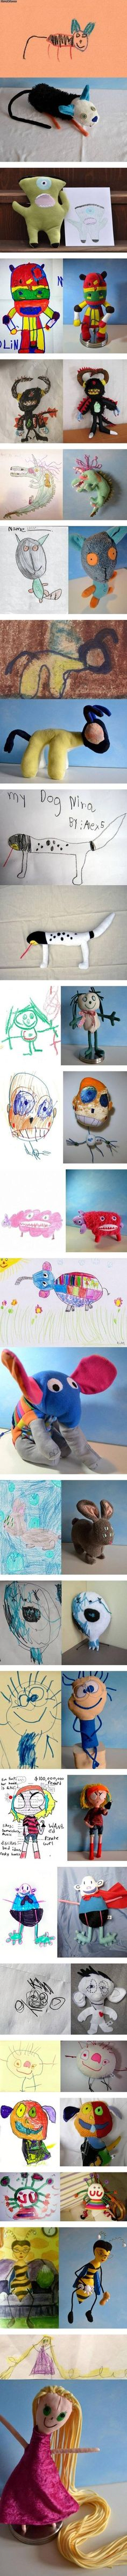 Toy company turning kids drawings into toys - awesome